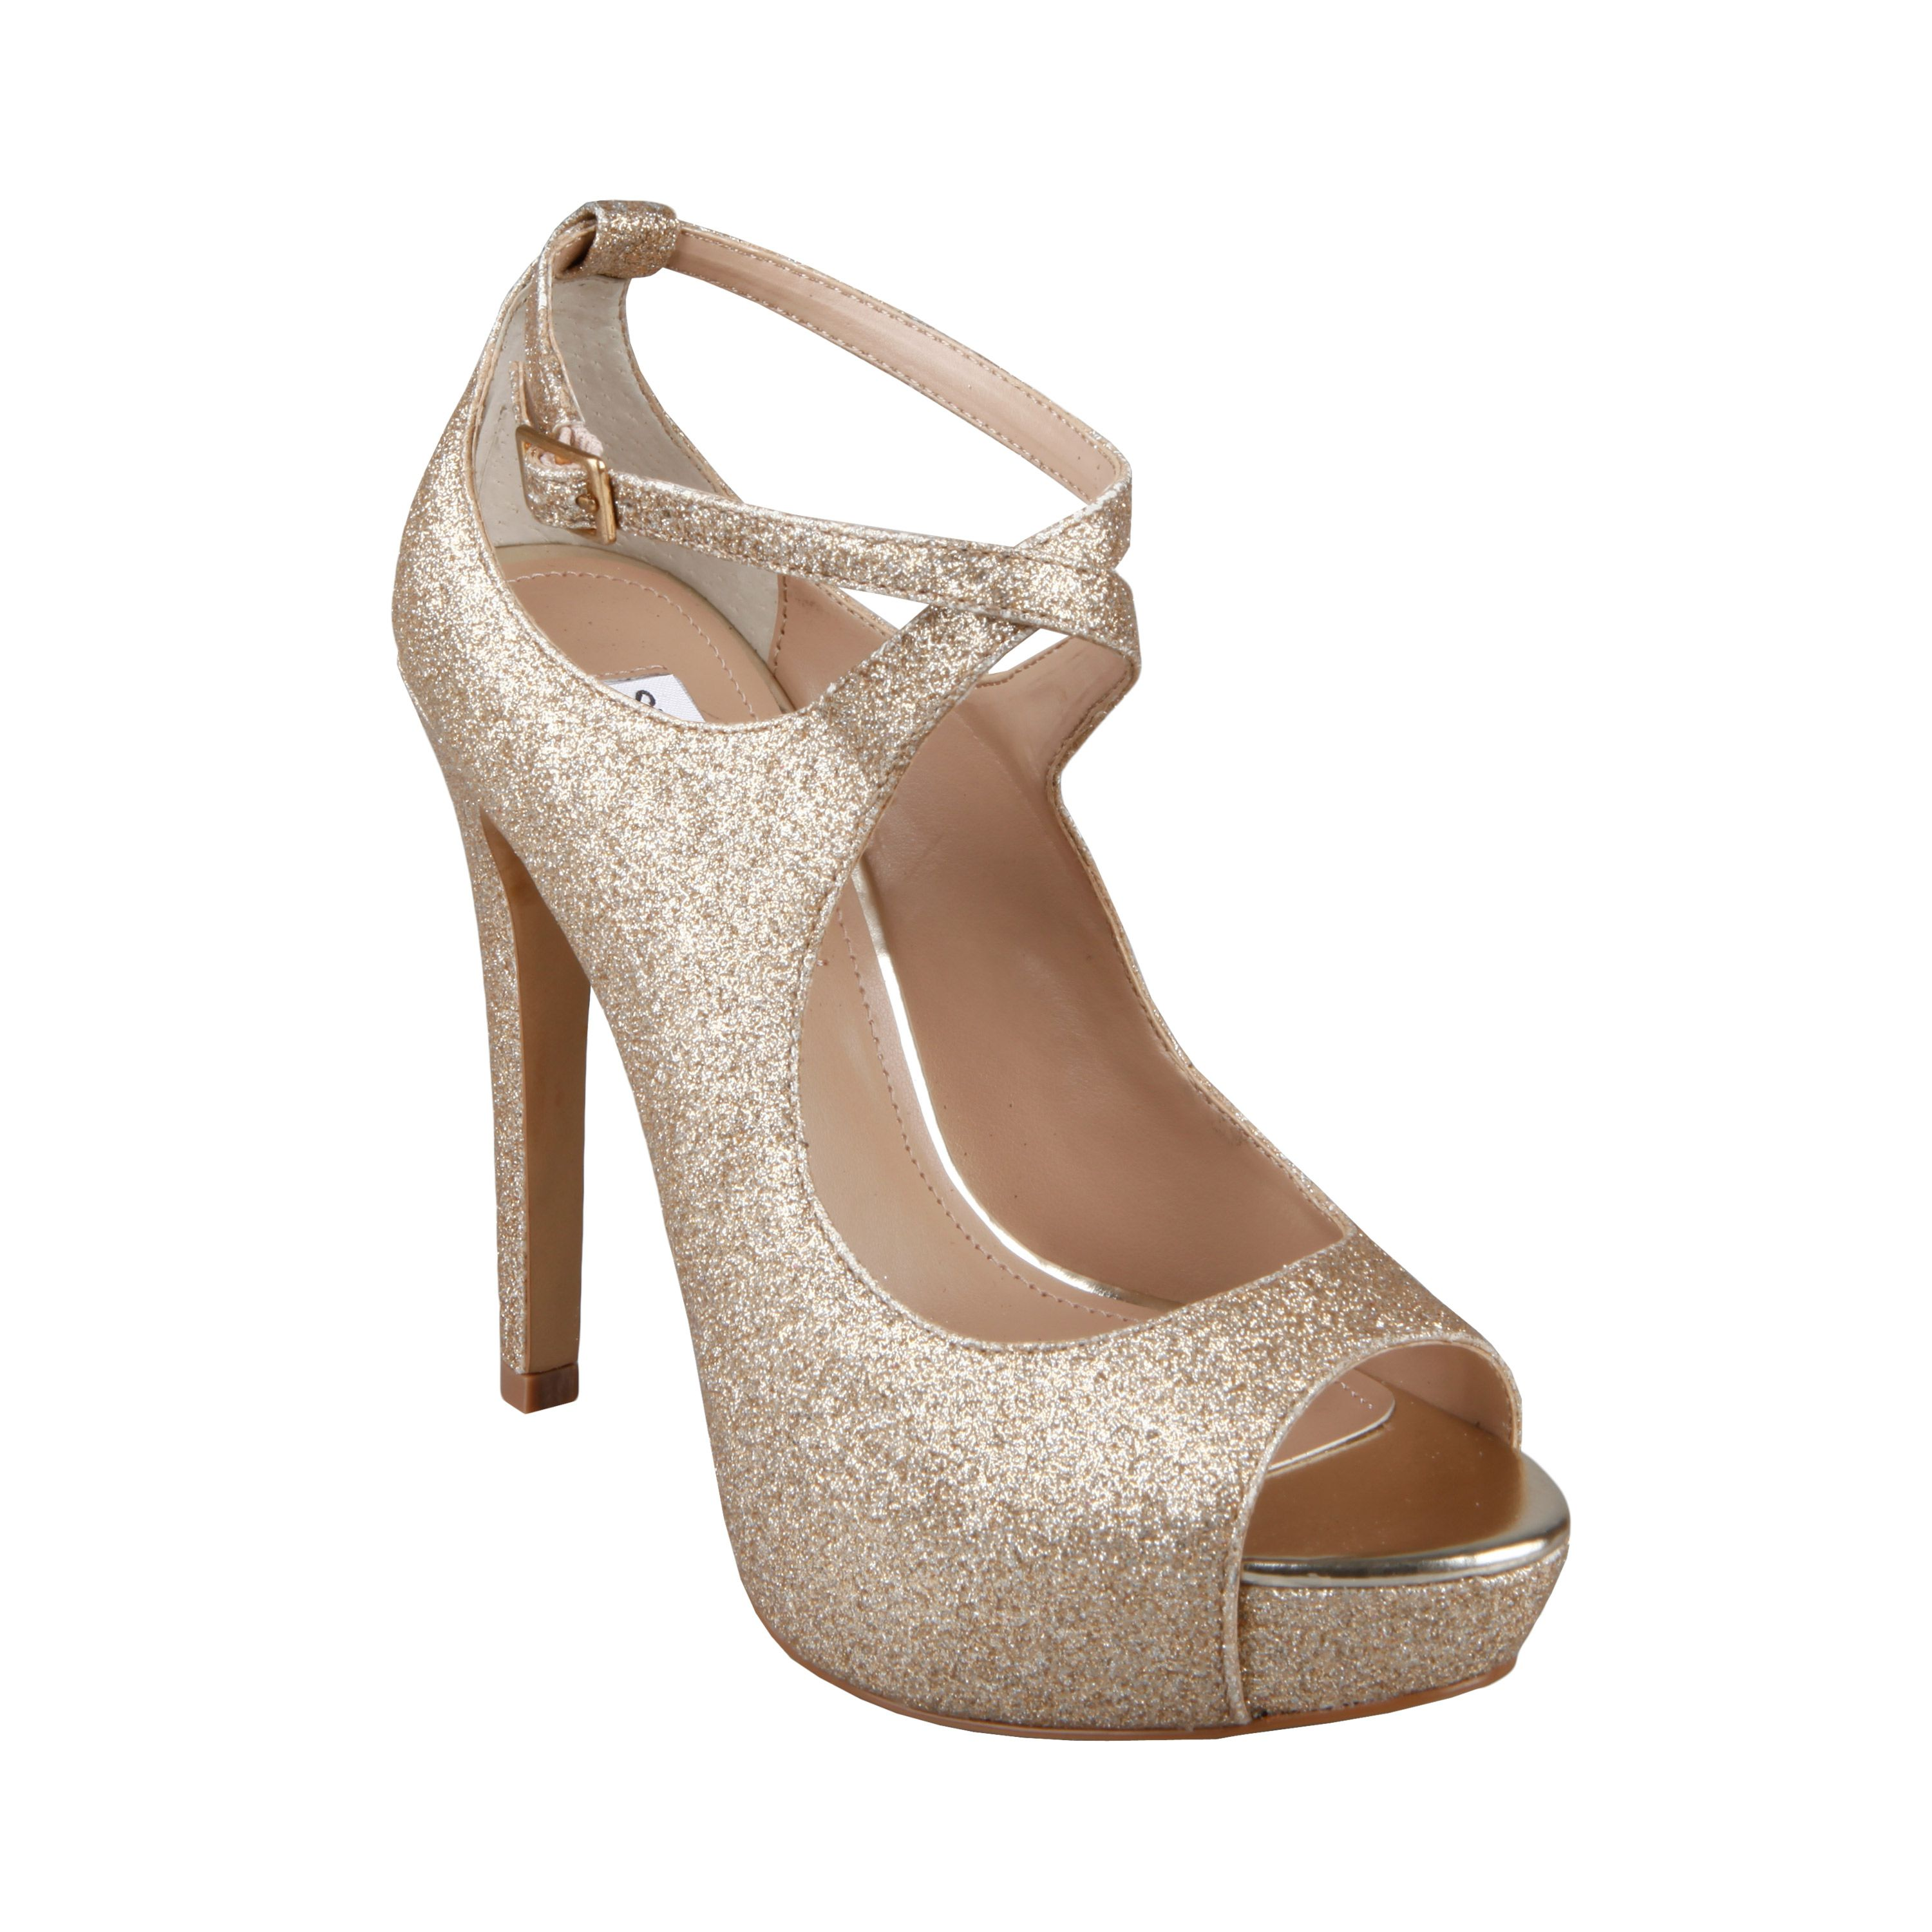 Gold dress shoes for wedding  Hottness  MayTrend Glamour  Pinterest  Glamour